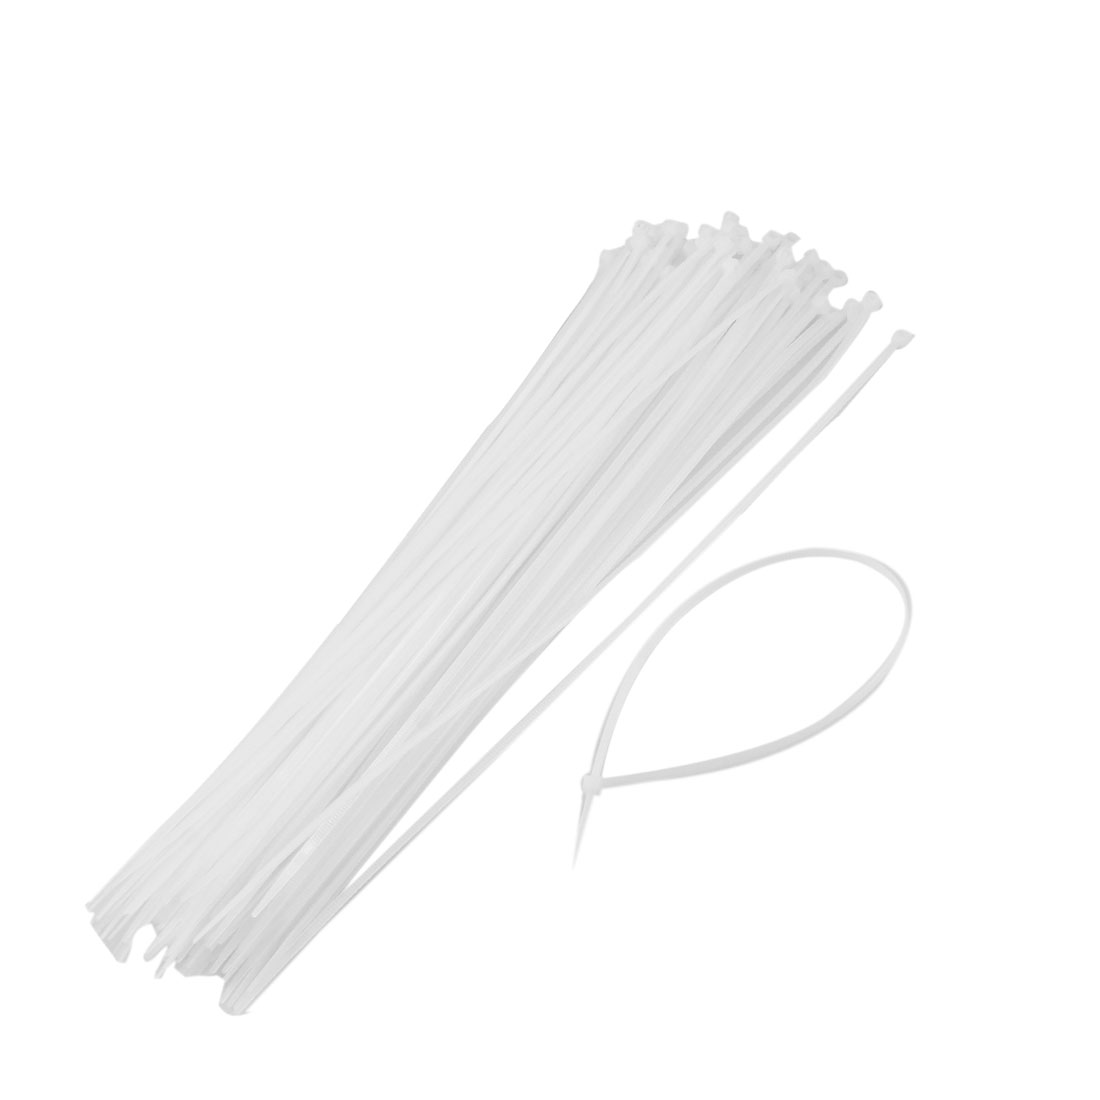 100 Pcs White Plastic Cable Zip Tie Fasten Wrap 295mm x 3mm